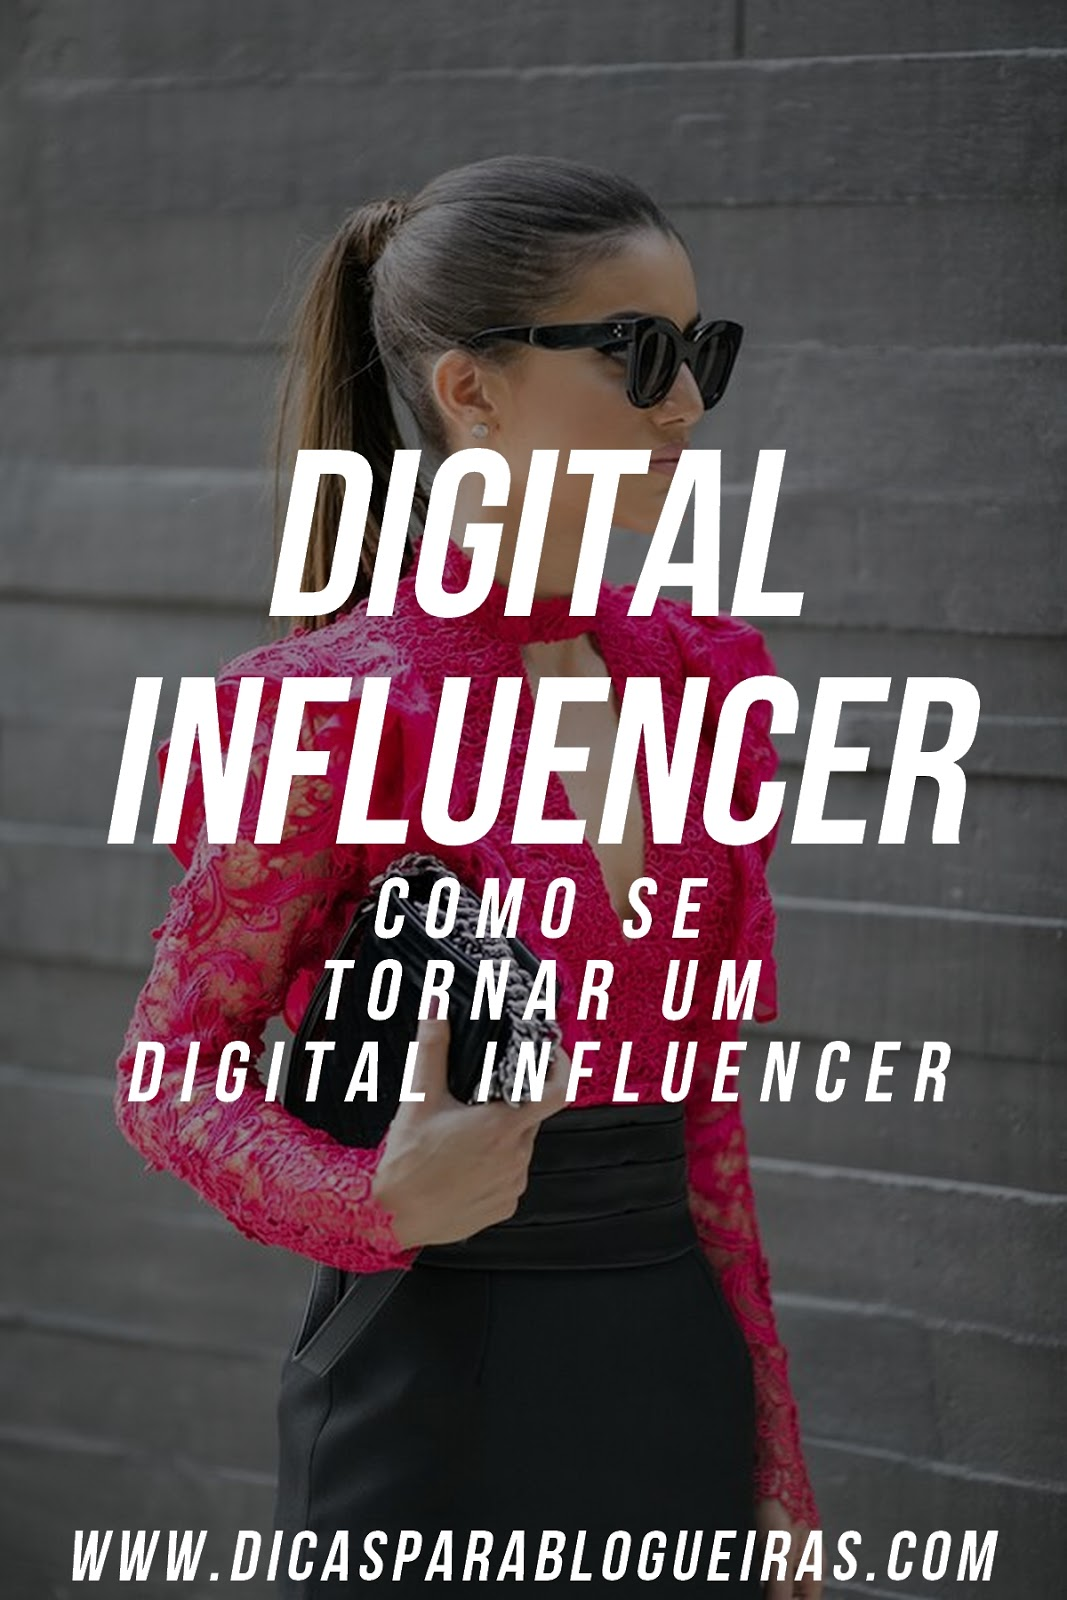 Digital Influencer | Como se tornar um Digital Influencer